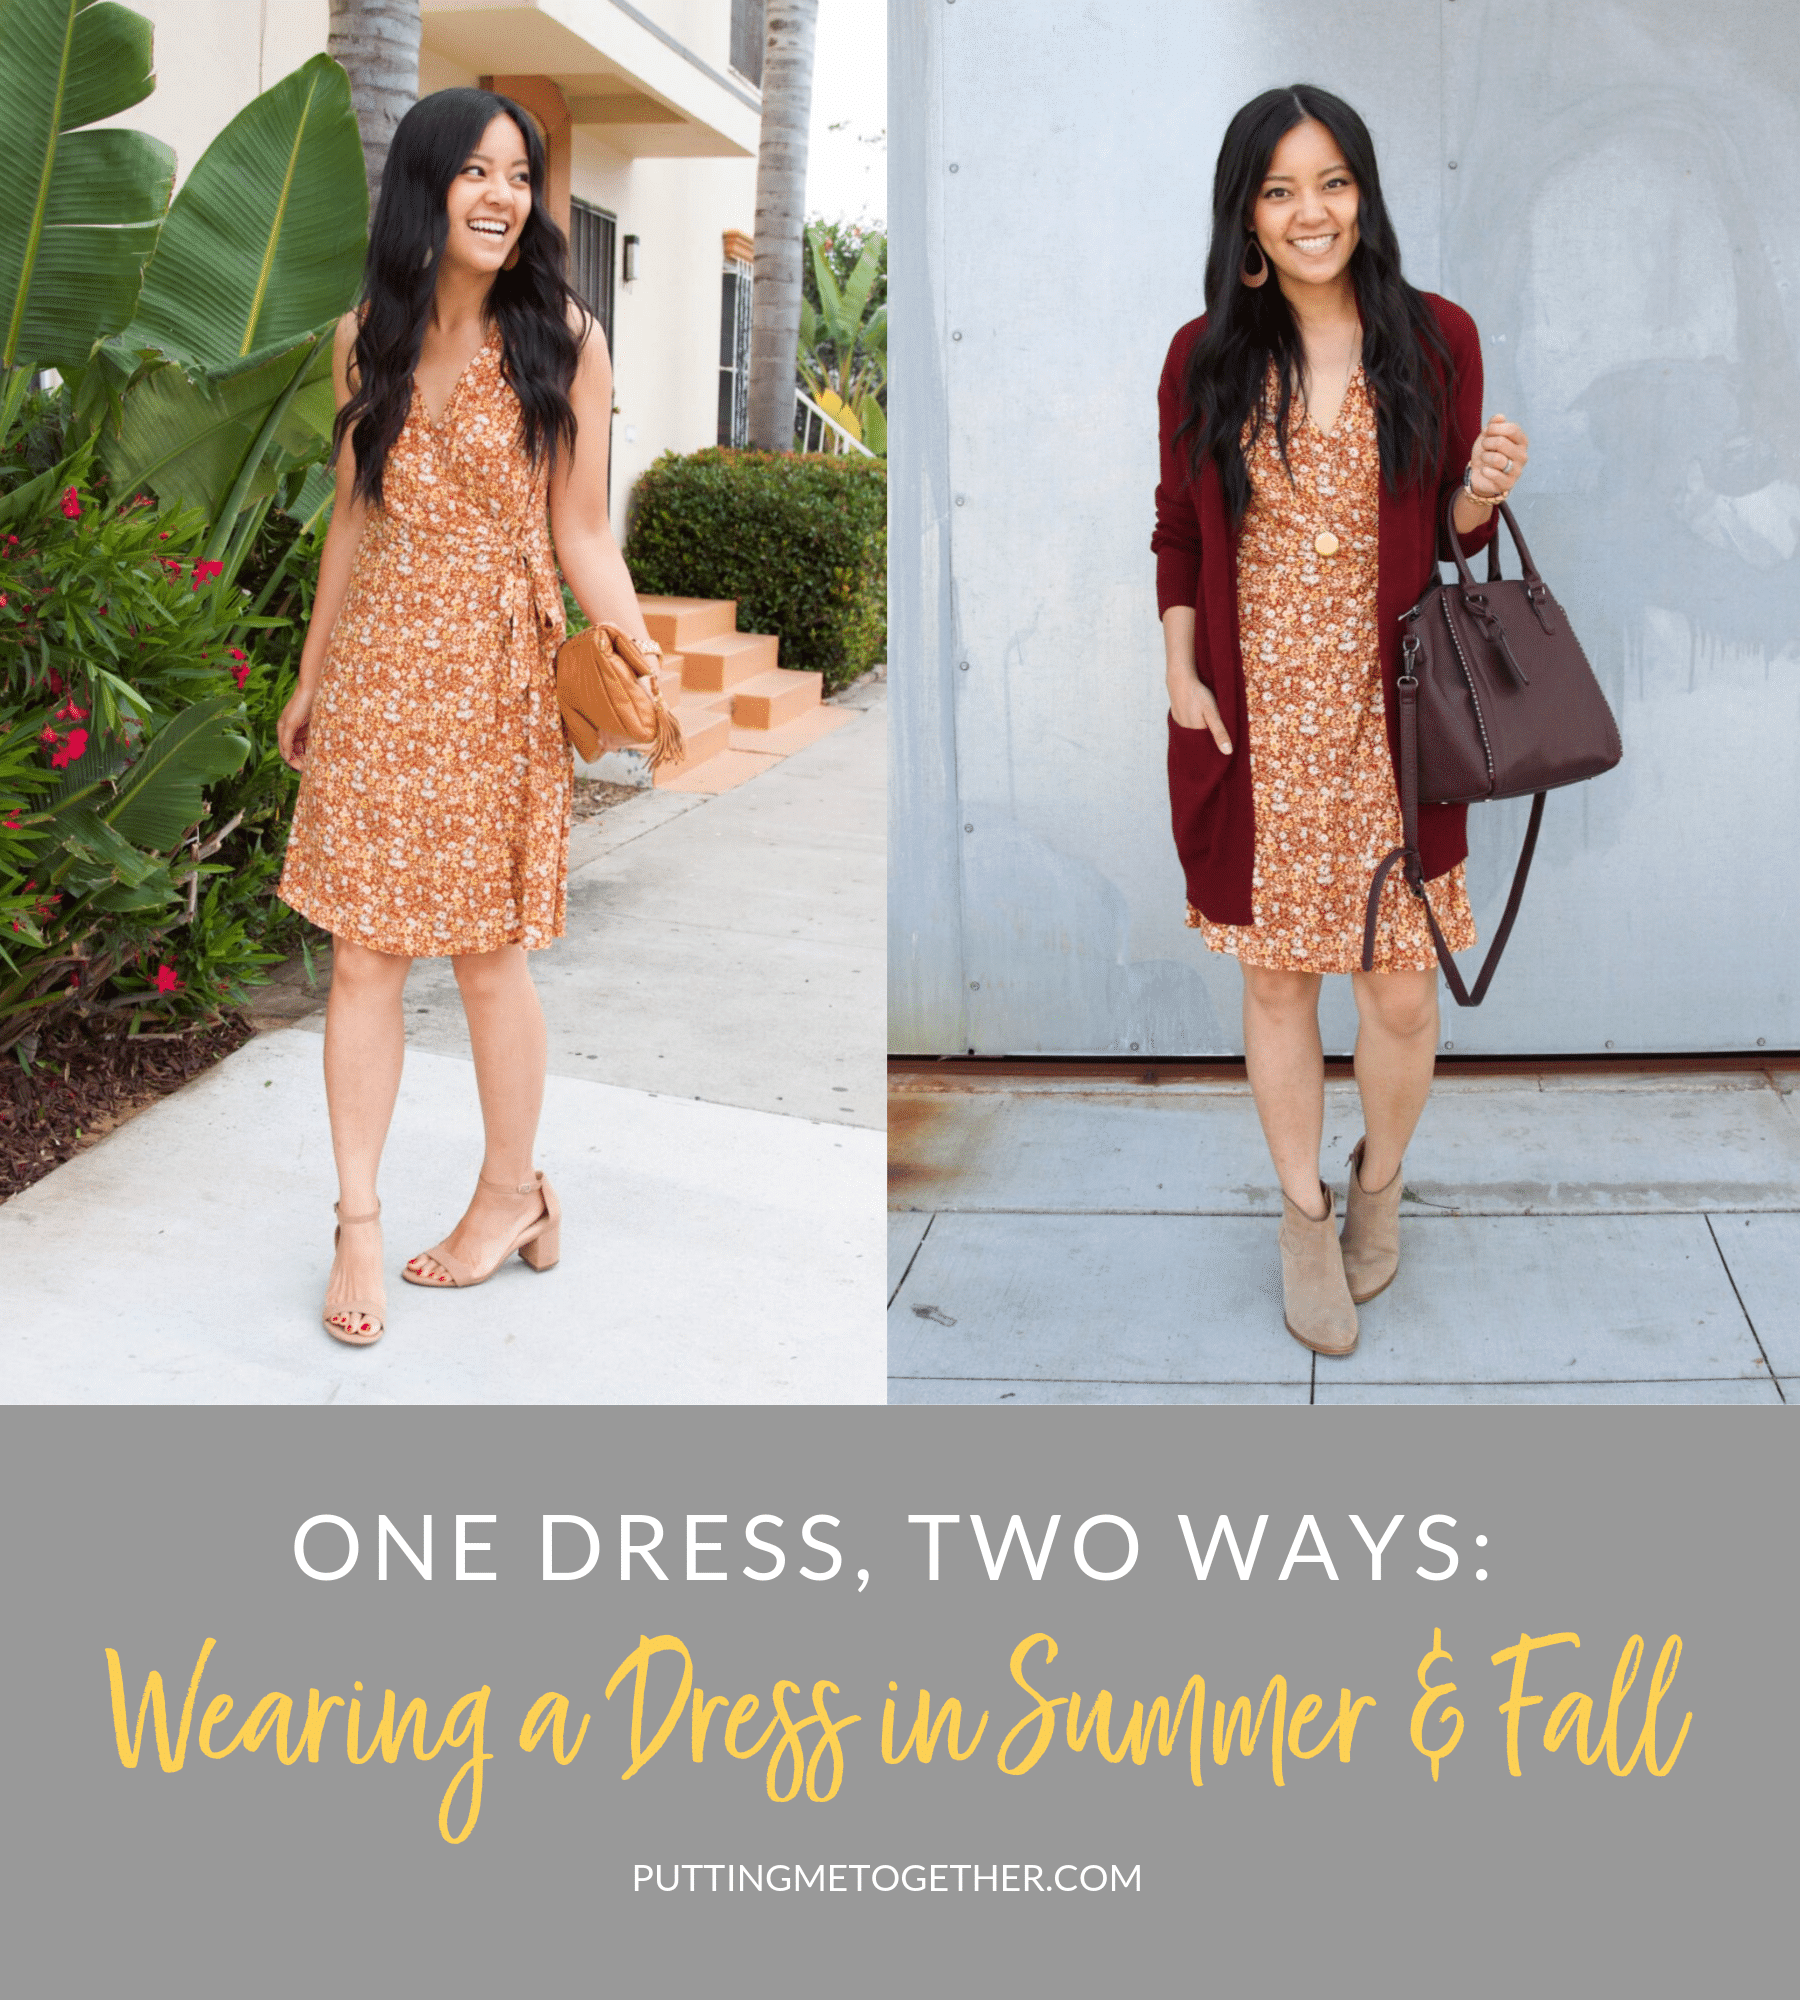 One Dress Two Ways: Wearing a Dress in Summer & Fall